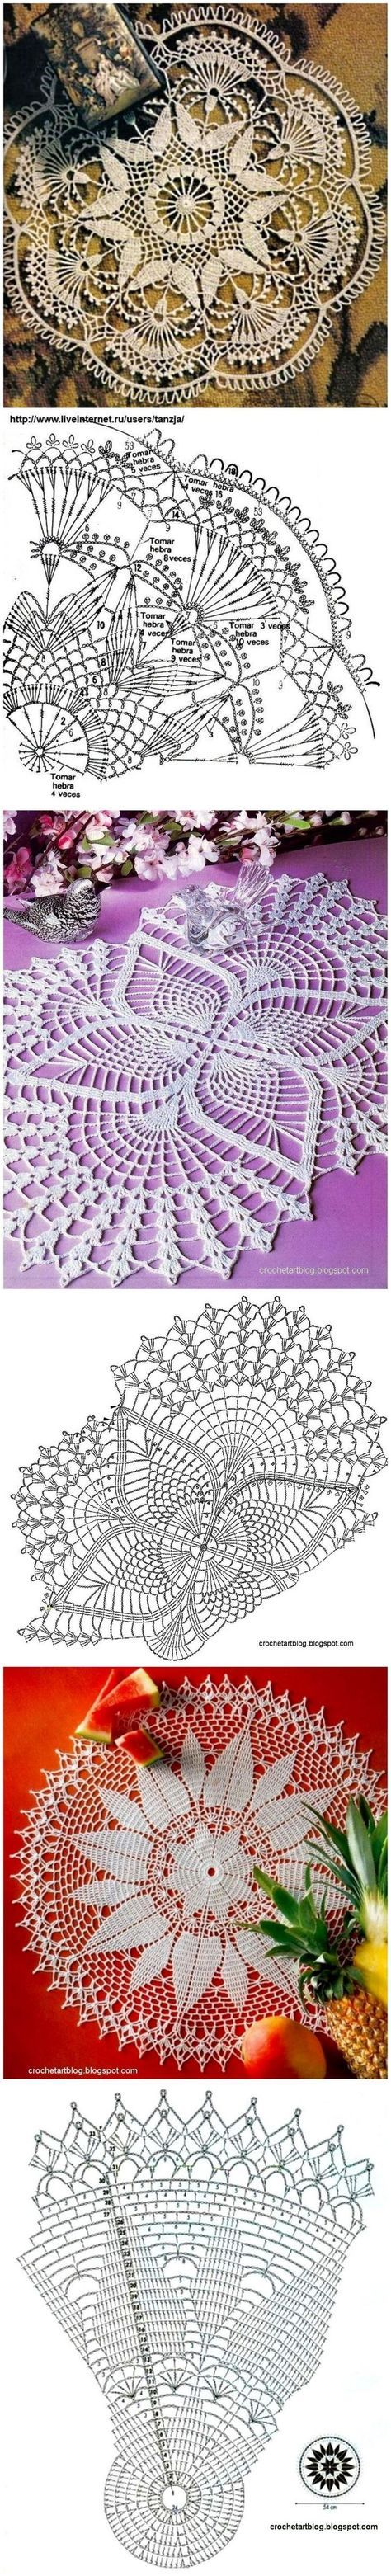 Best 25 crochet doily patterns ideas on pinterest free doily free crochet doily pattern bankloansurffo Image collections